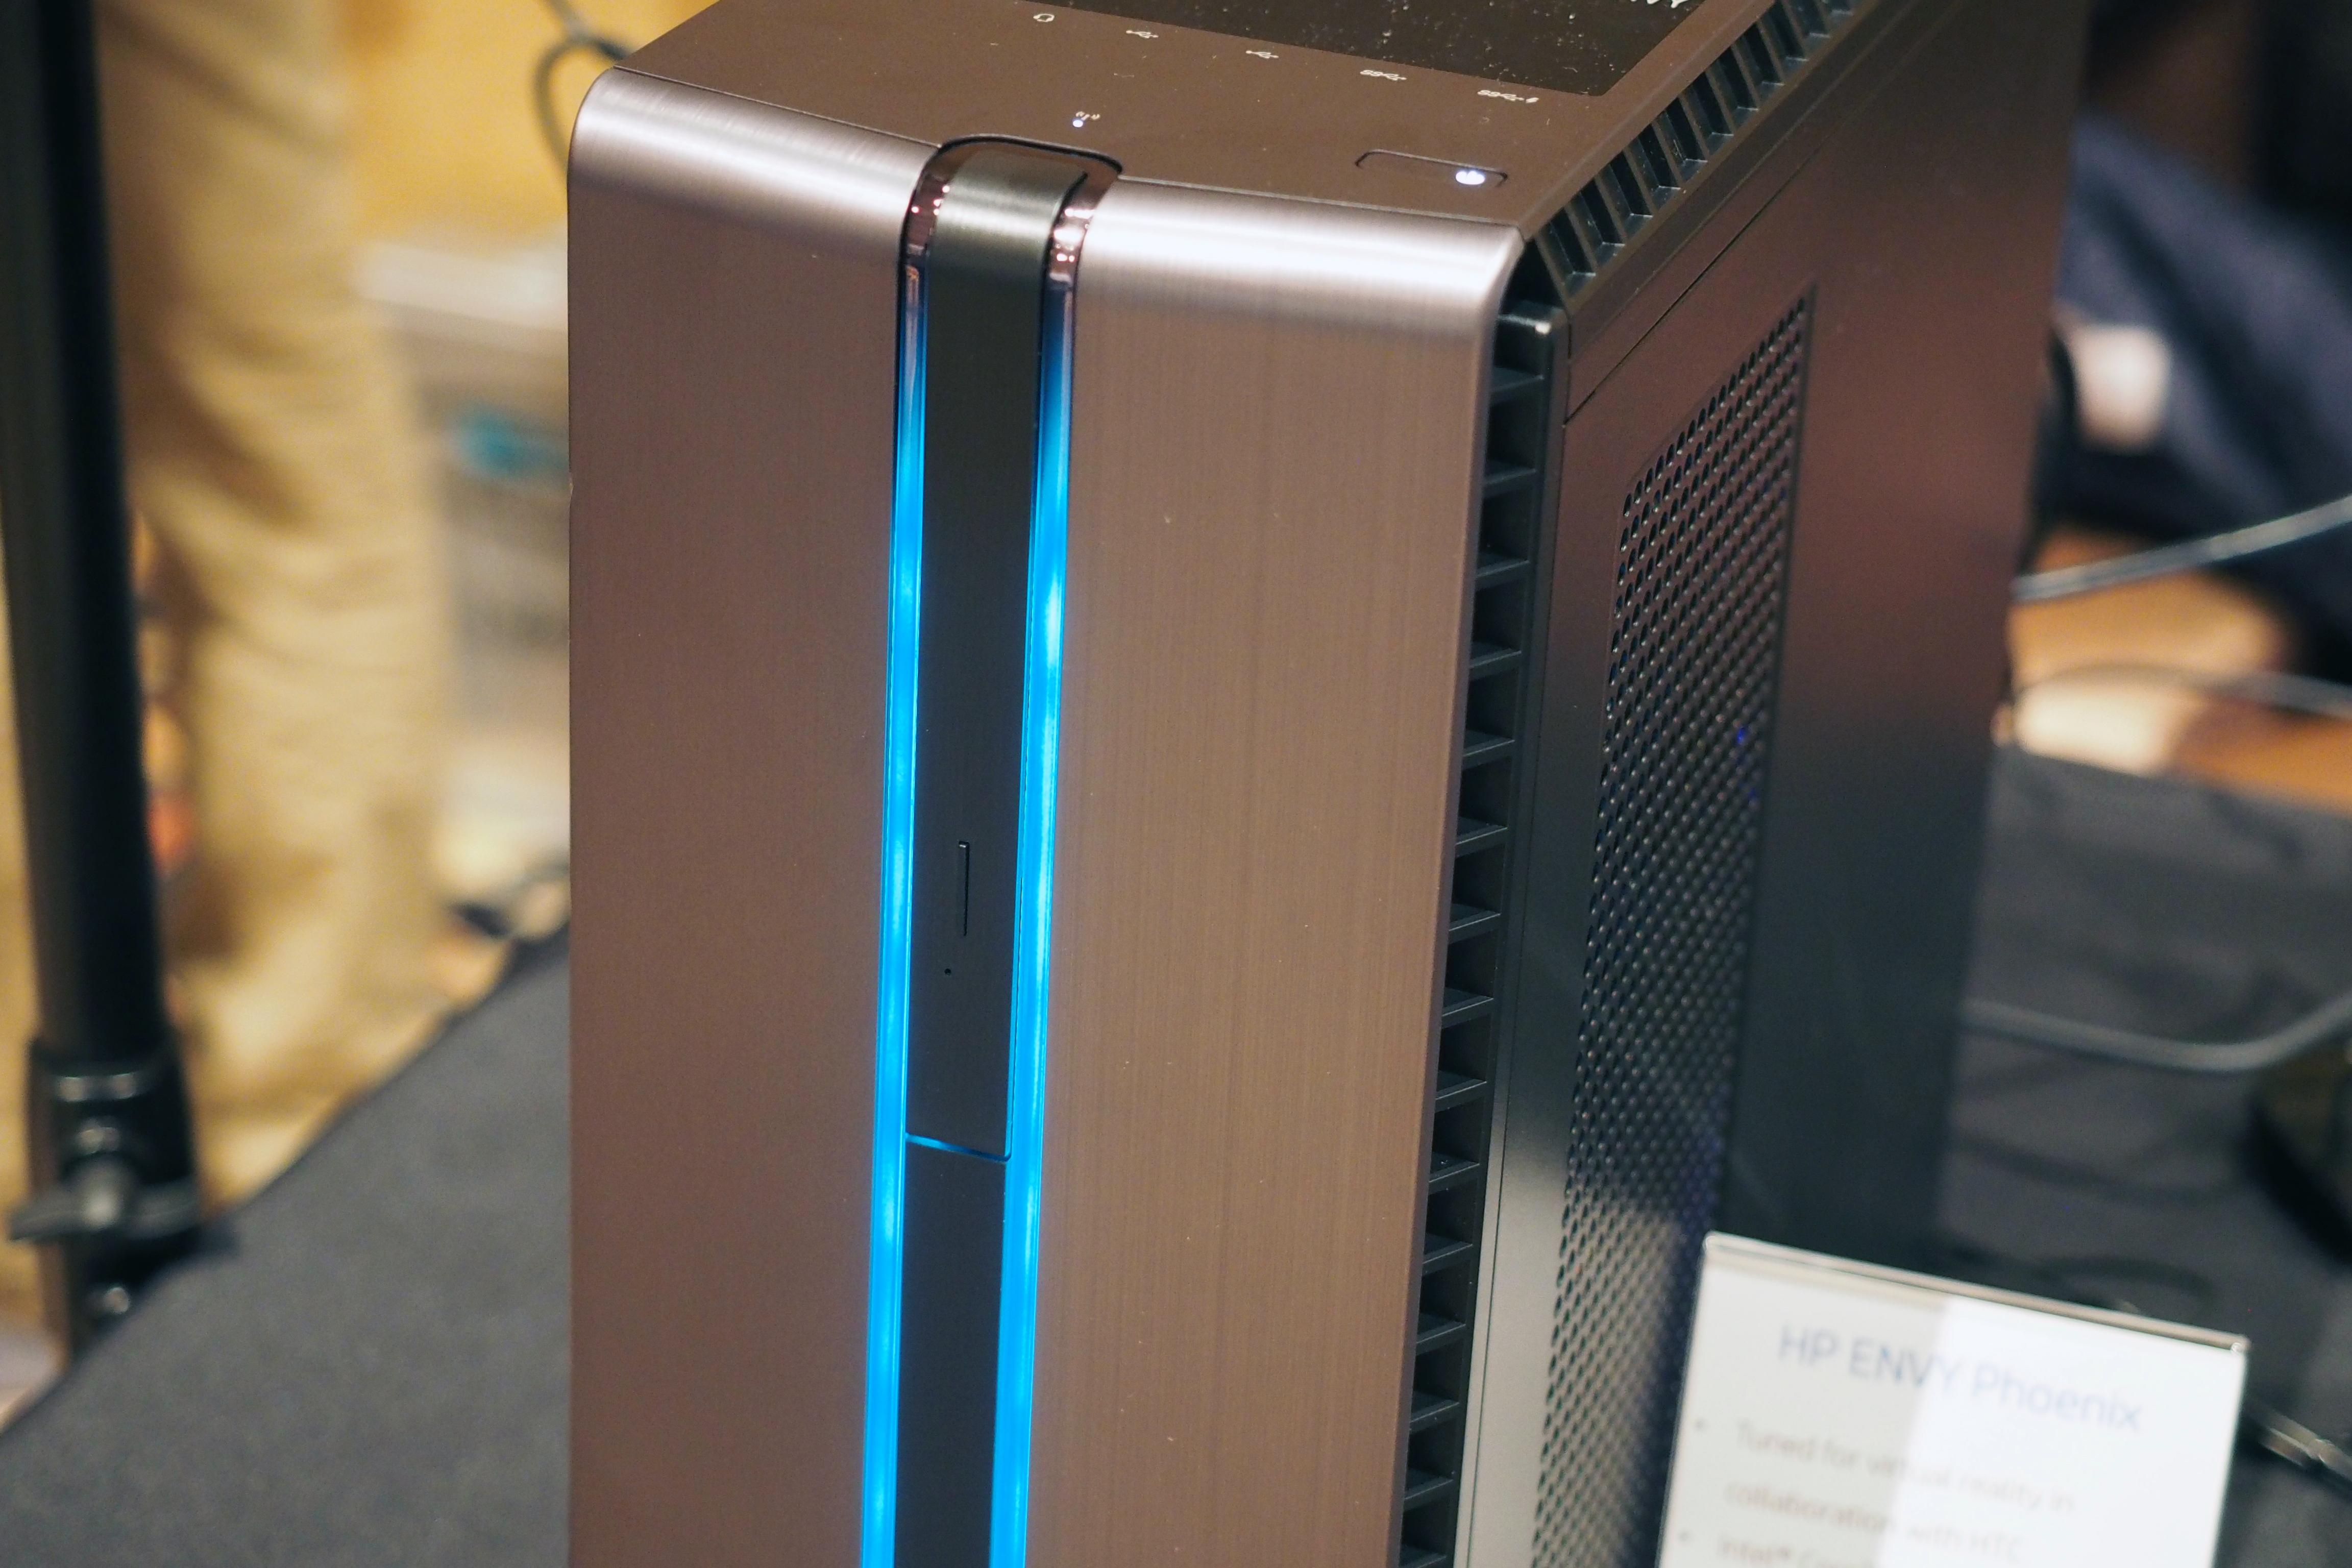 HP's Envy Phoenix gaming desktop will support HTC's new VR headset